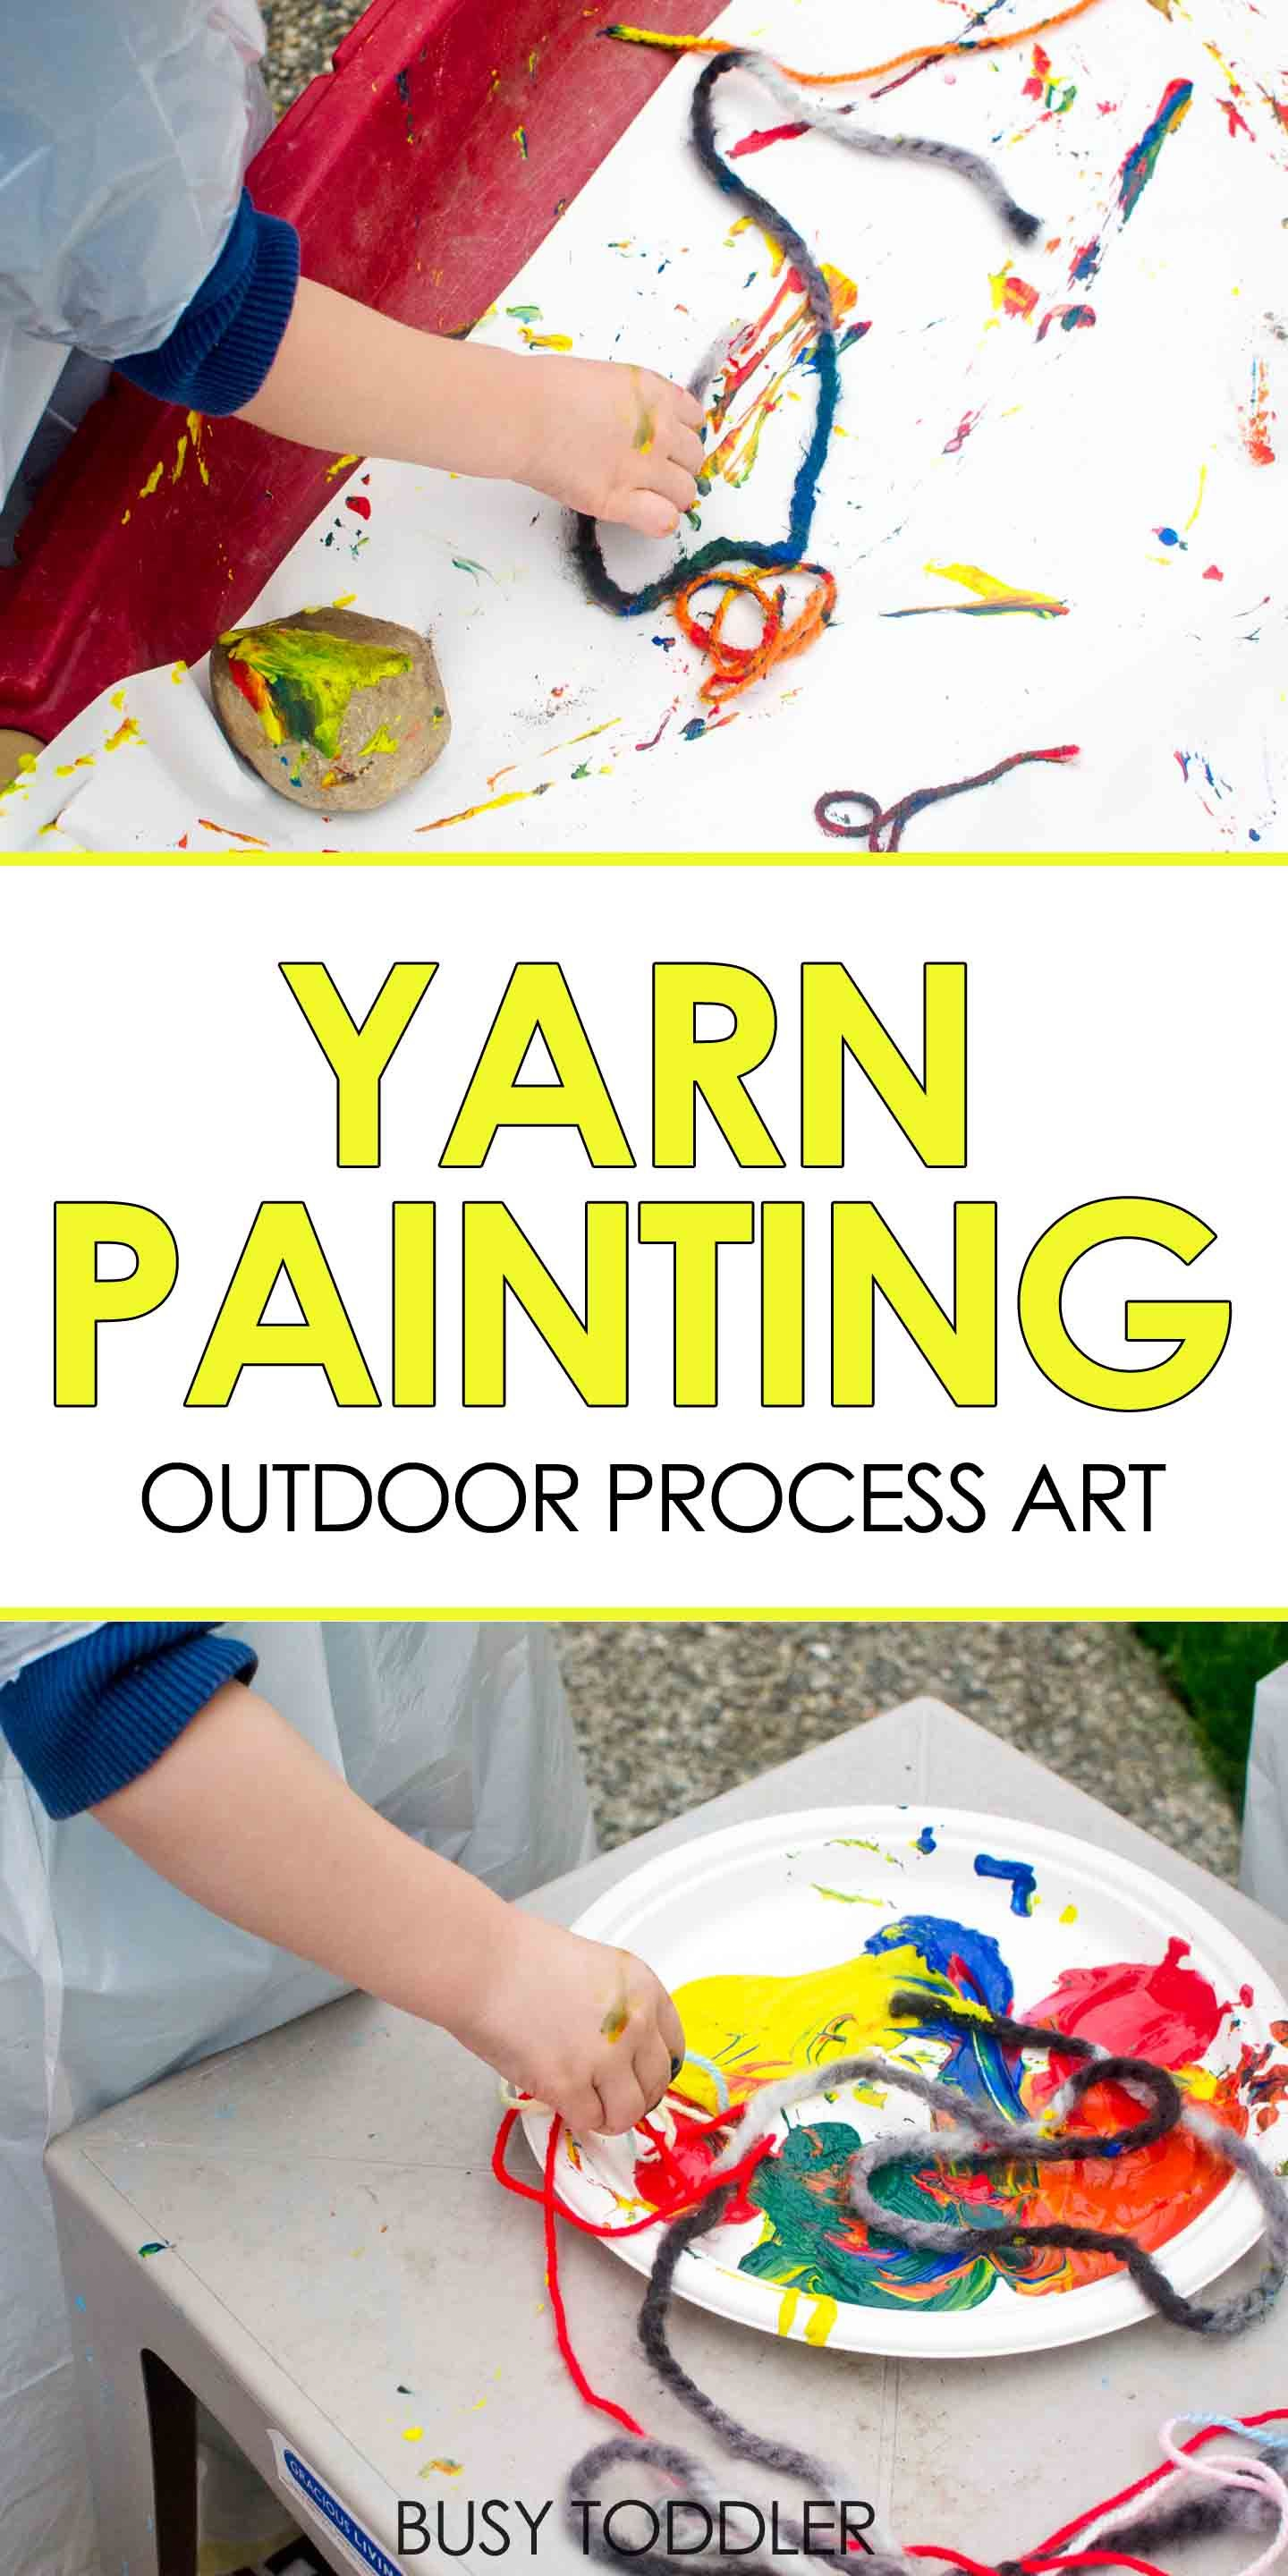 Yarn Painting Outdoor Process Art